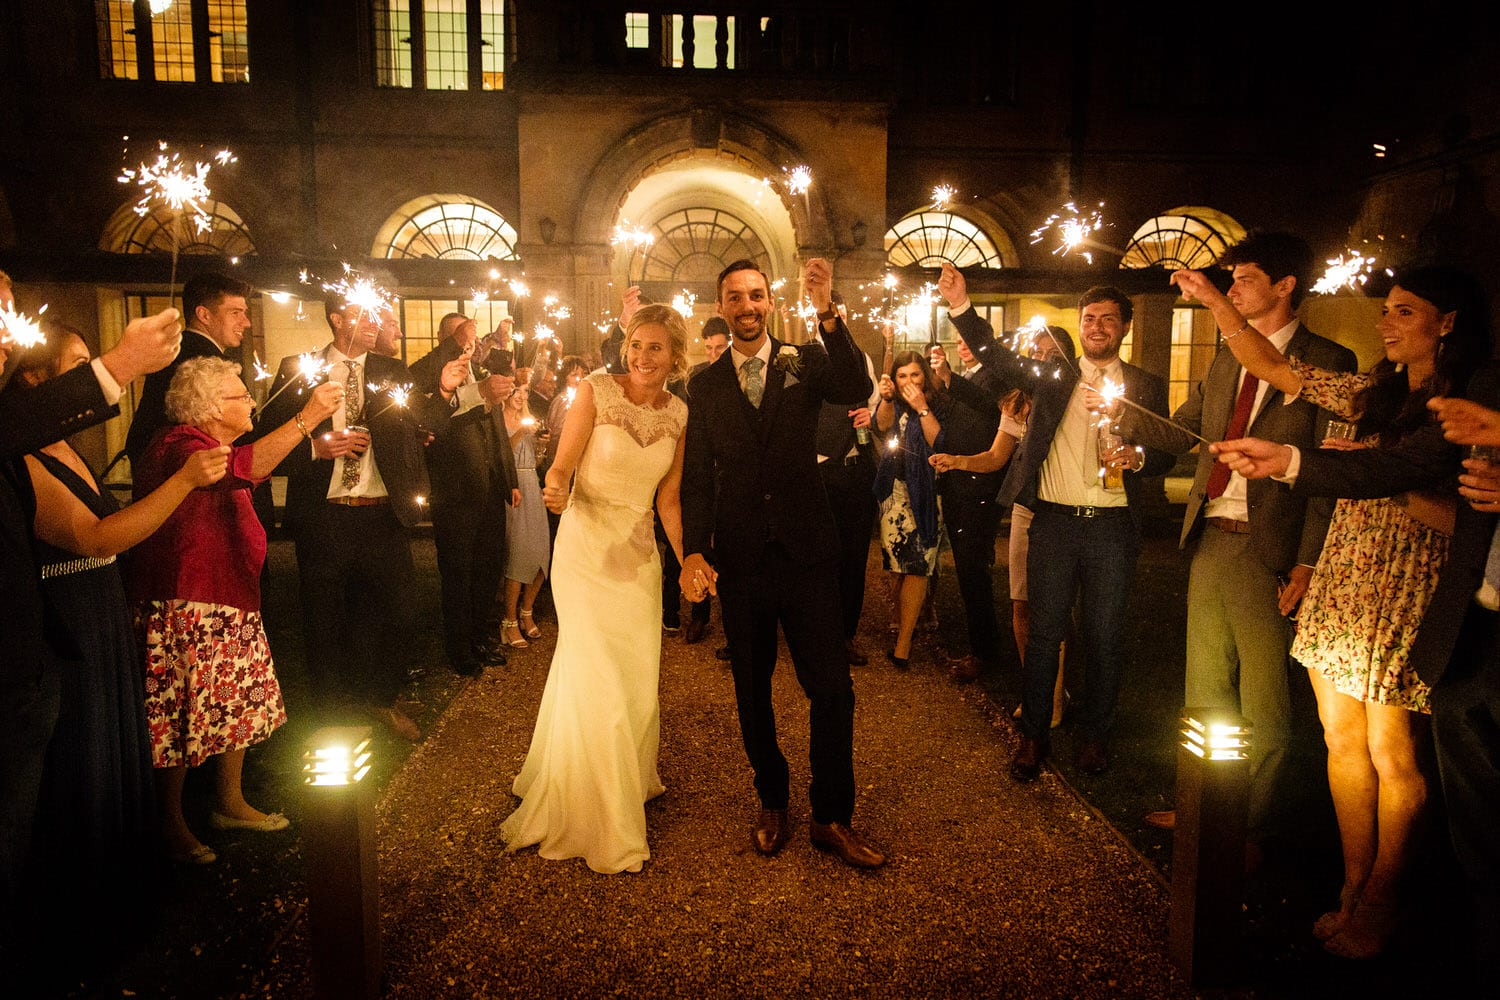 Sparklers in the night of the wedding at Coombe Lodge, Blagdon